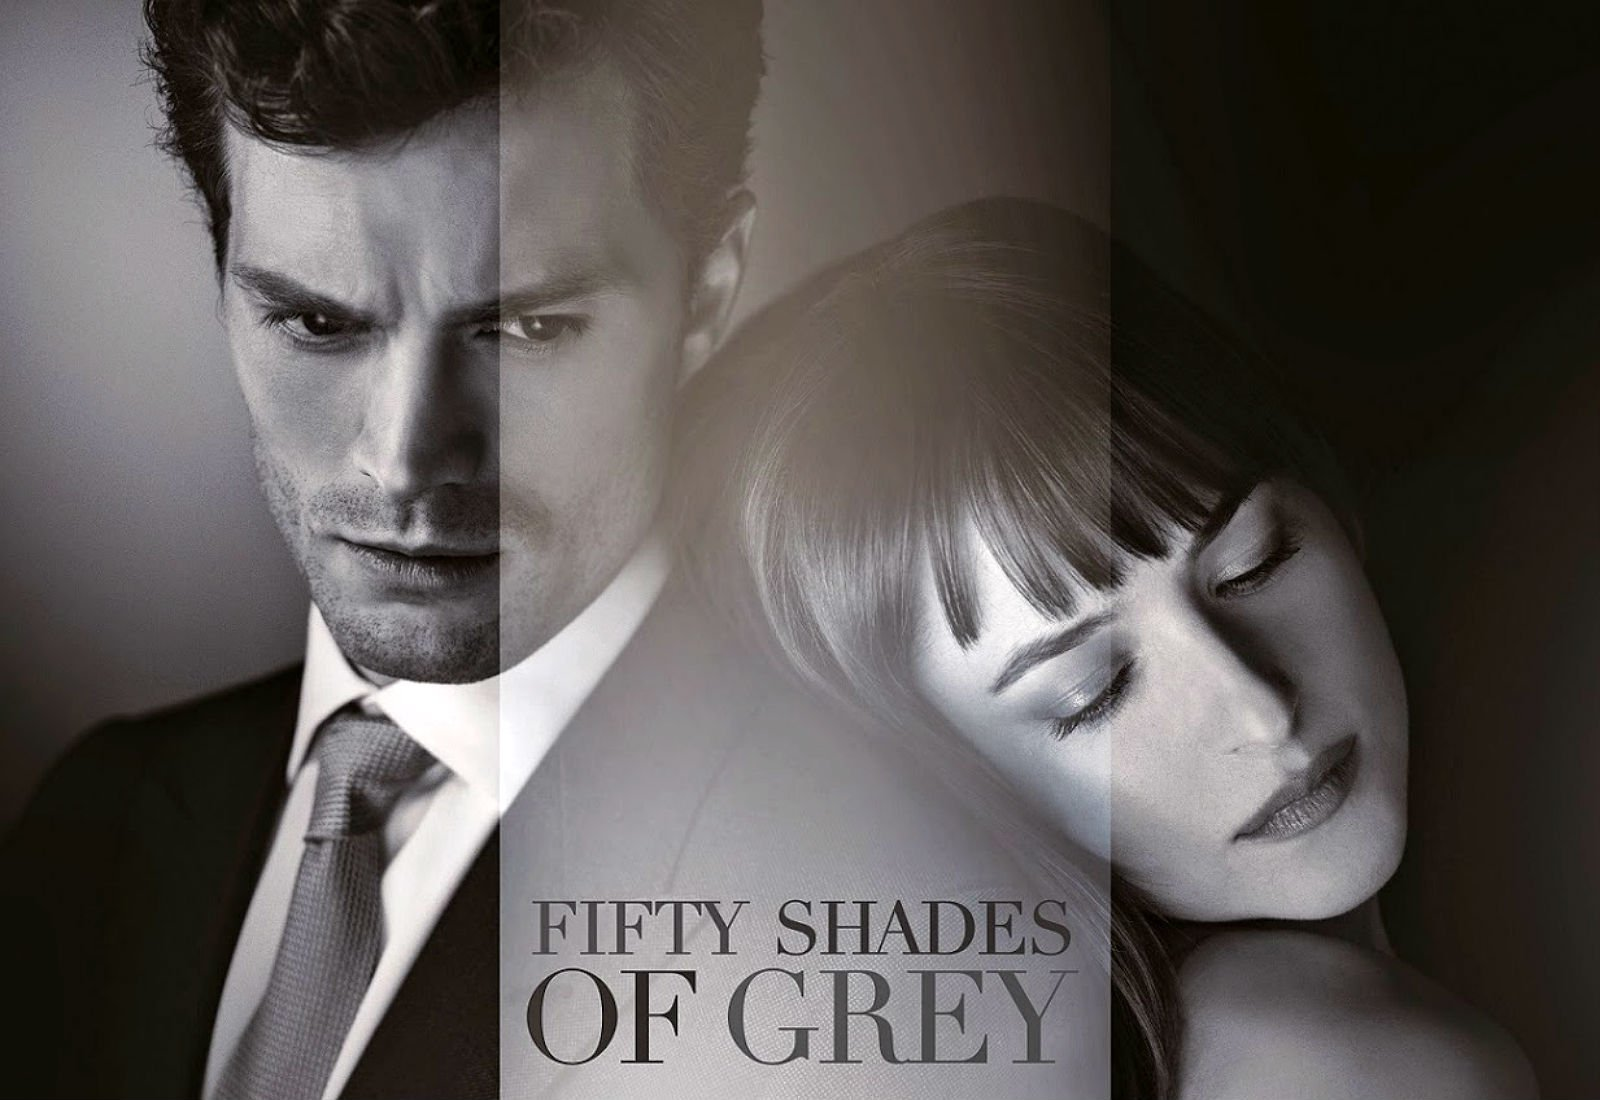 Fifty shades of grey wallpapers for Fifth shade of grey